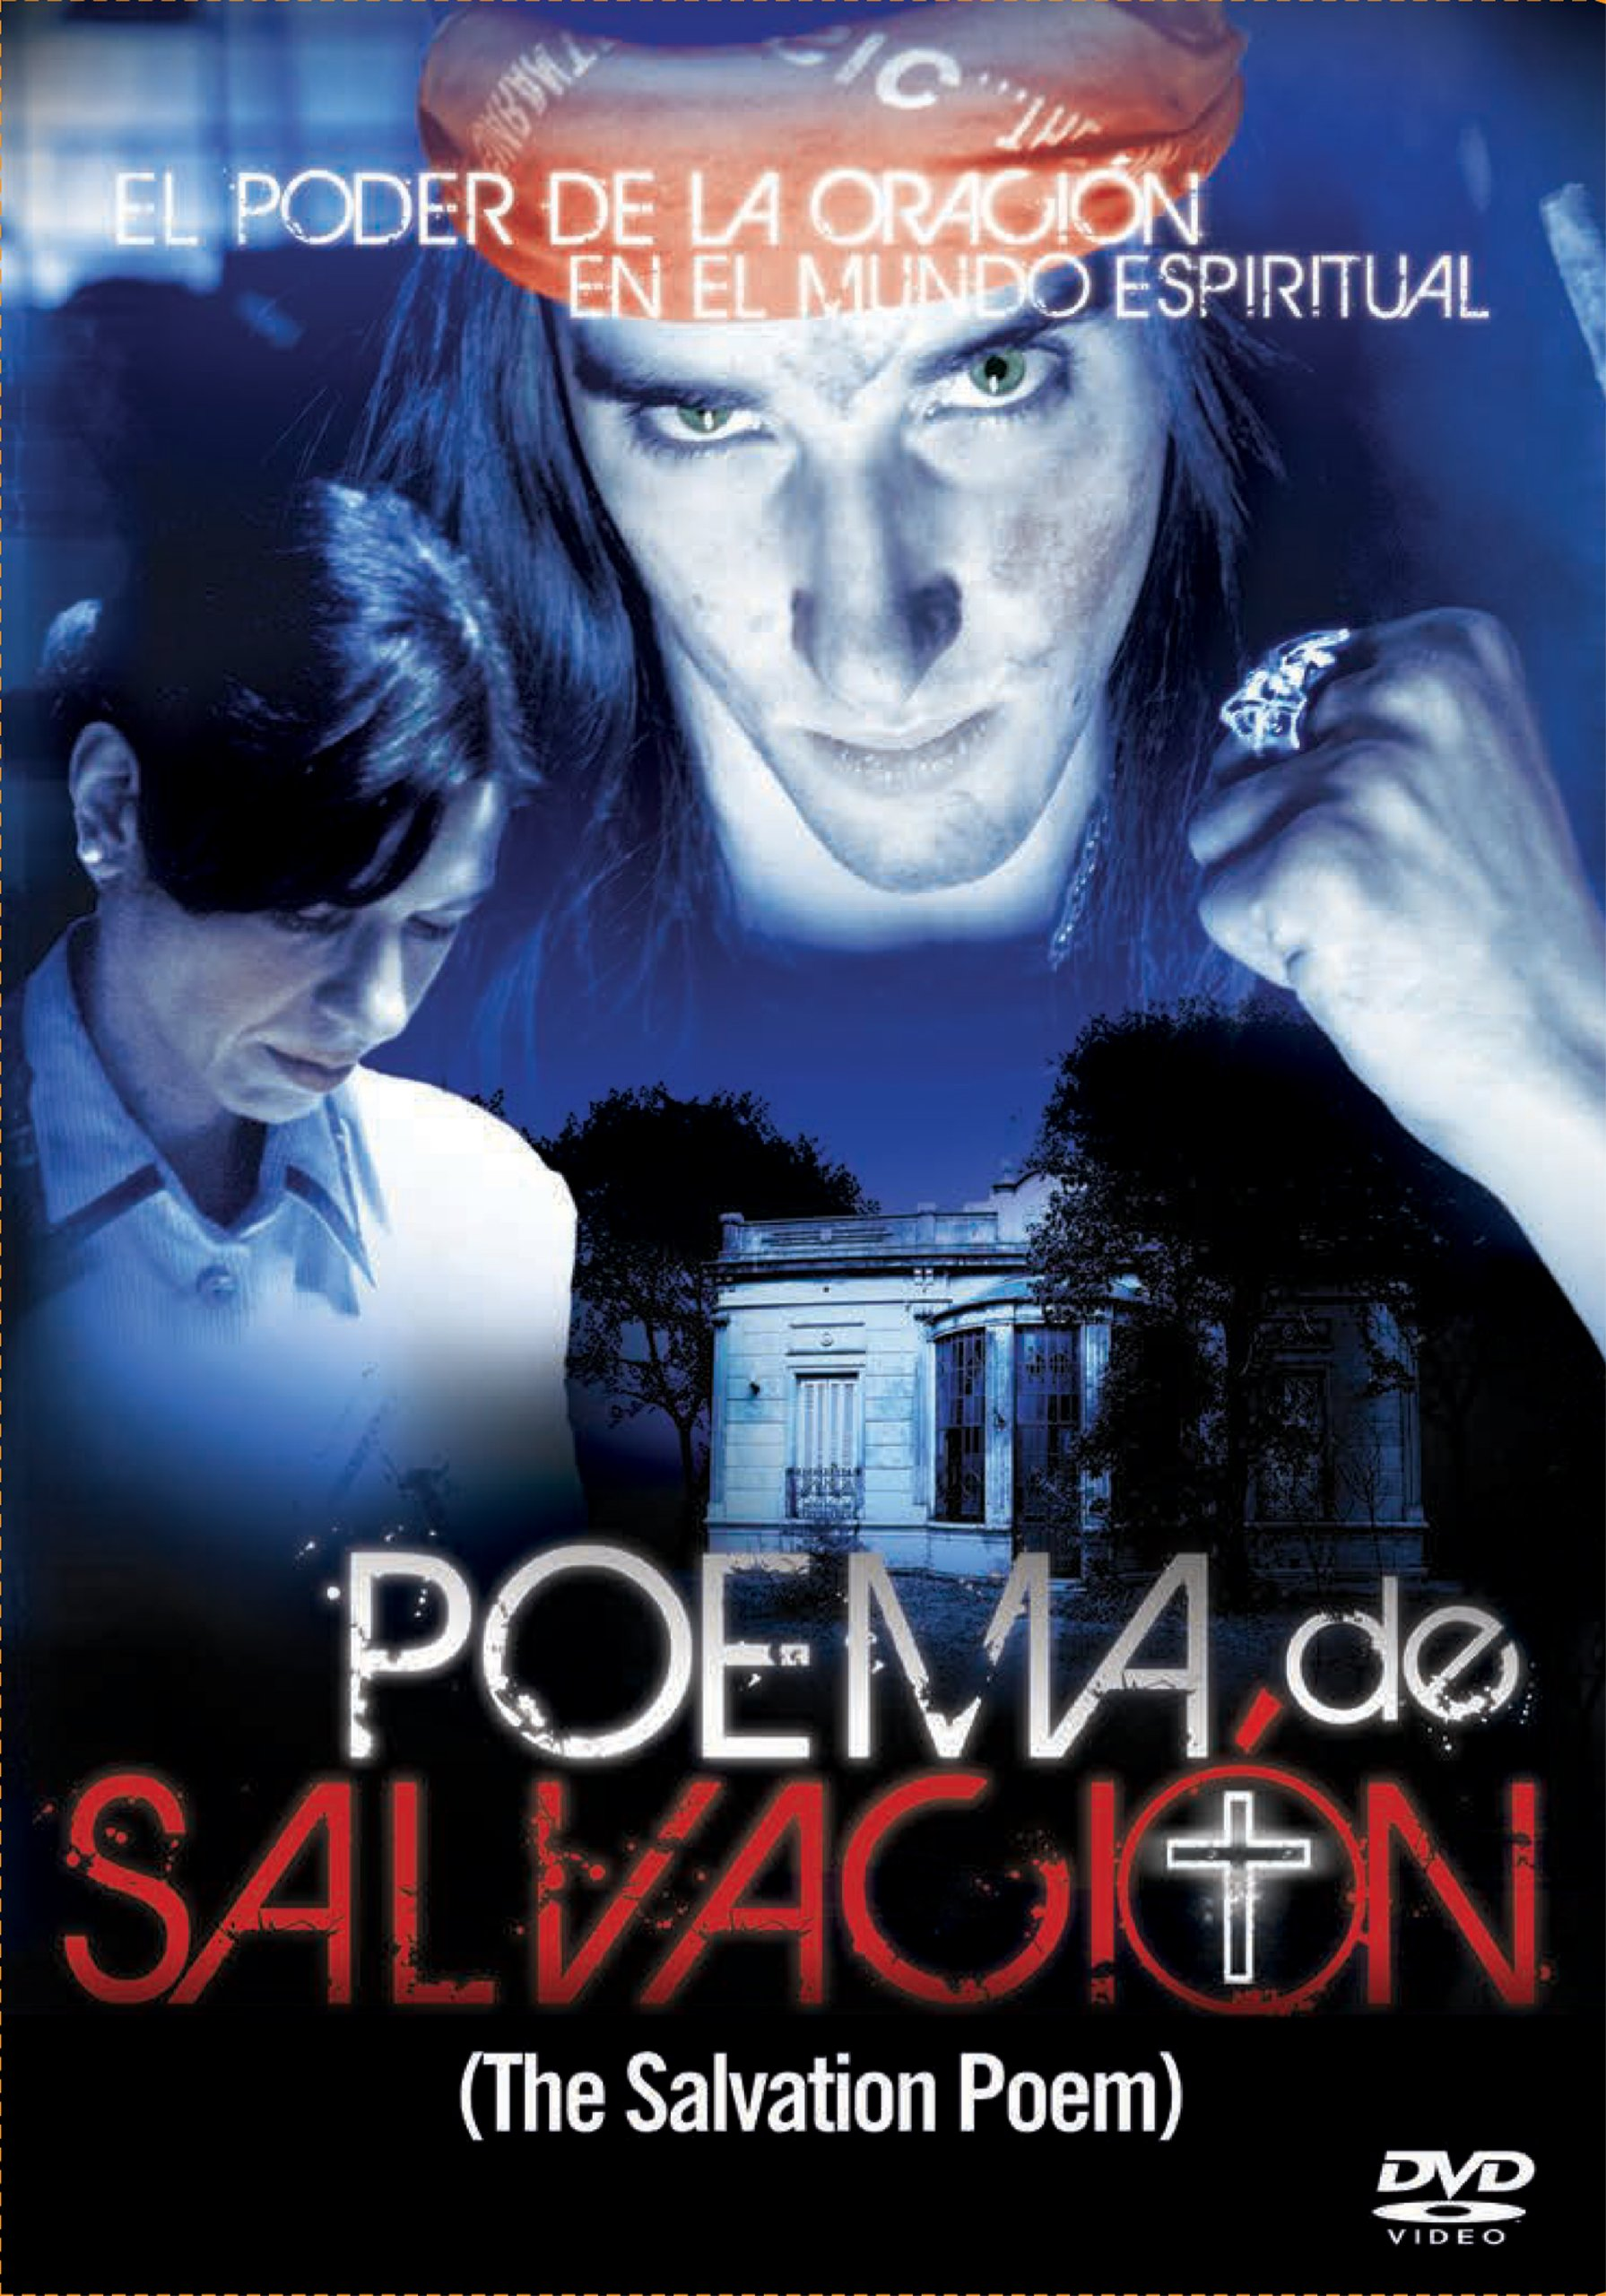 Poema de Salvacion (The Salvation Poem) (AC-3, Subtitled)